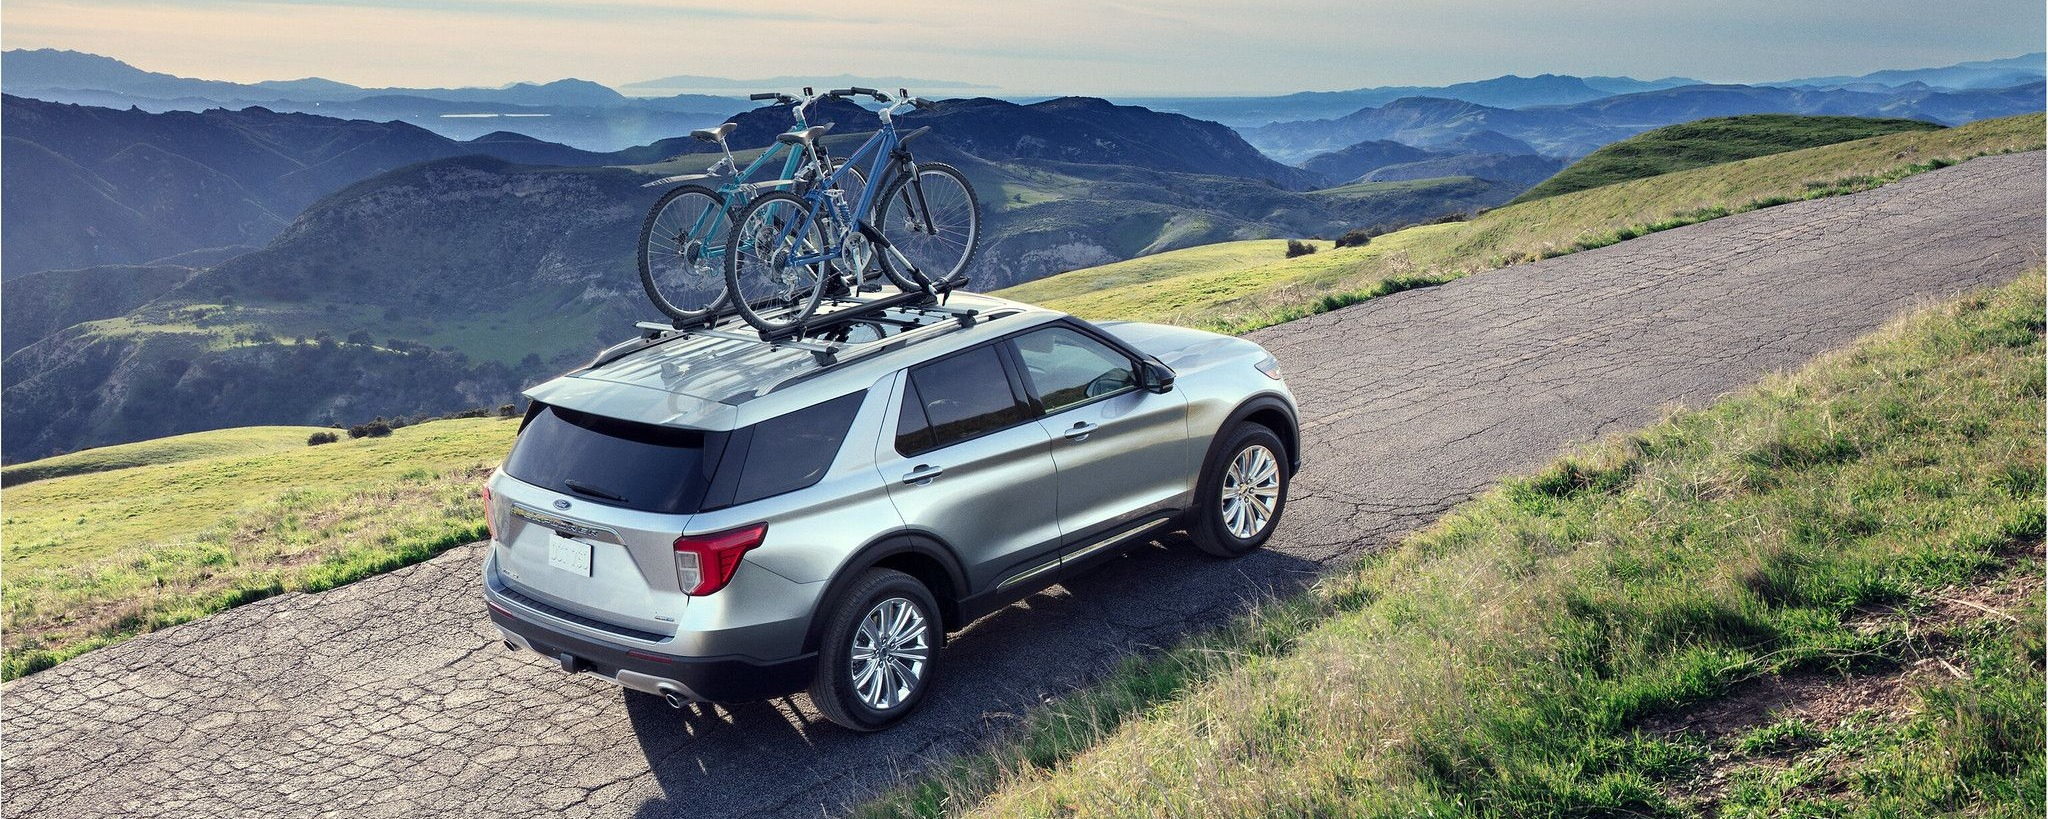 9 Ford Explorer Family Accessories  Hometown Motors  Weiser, ID